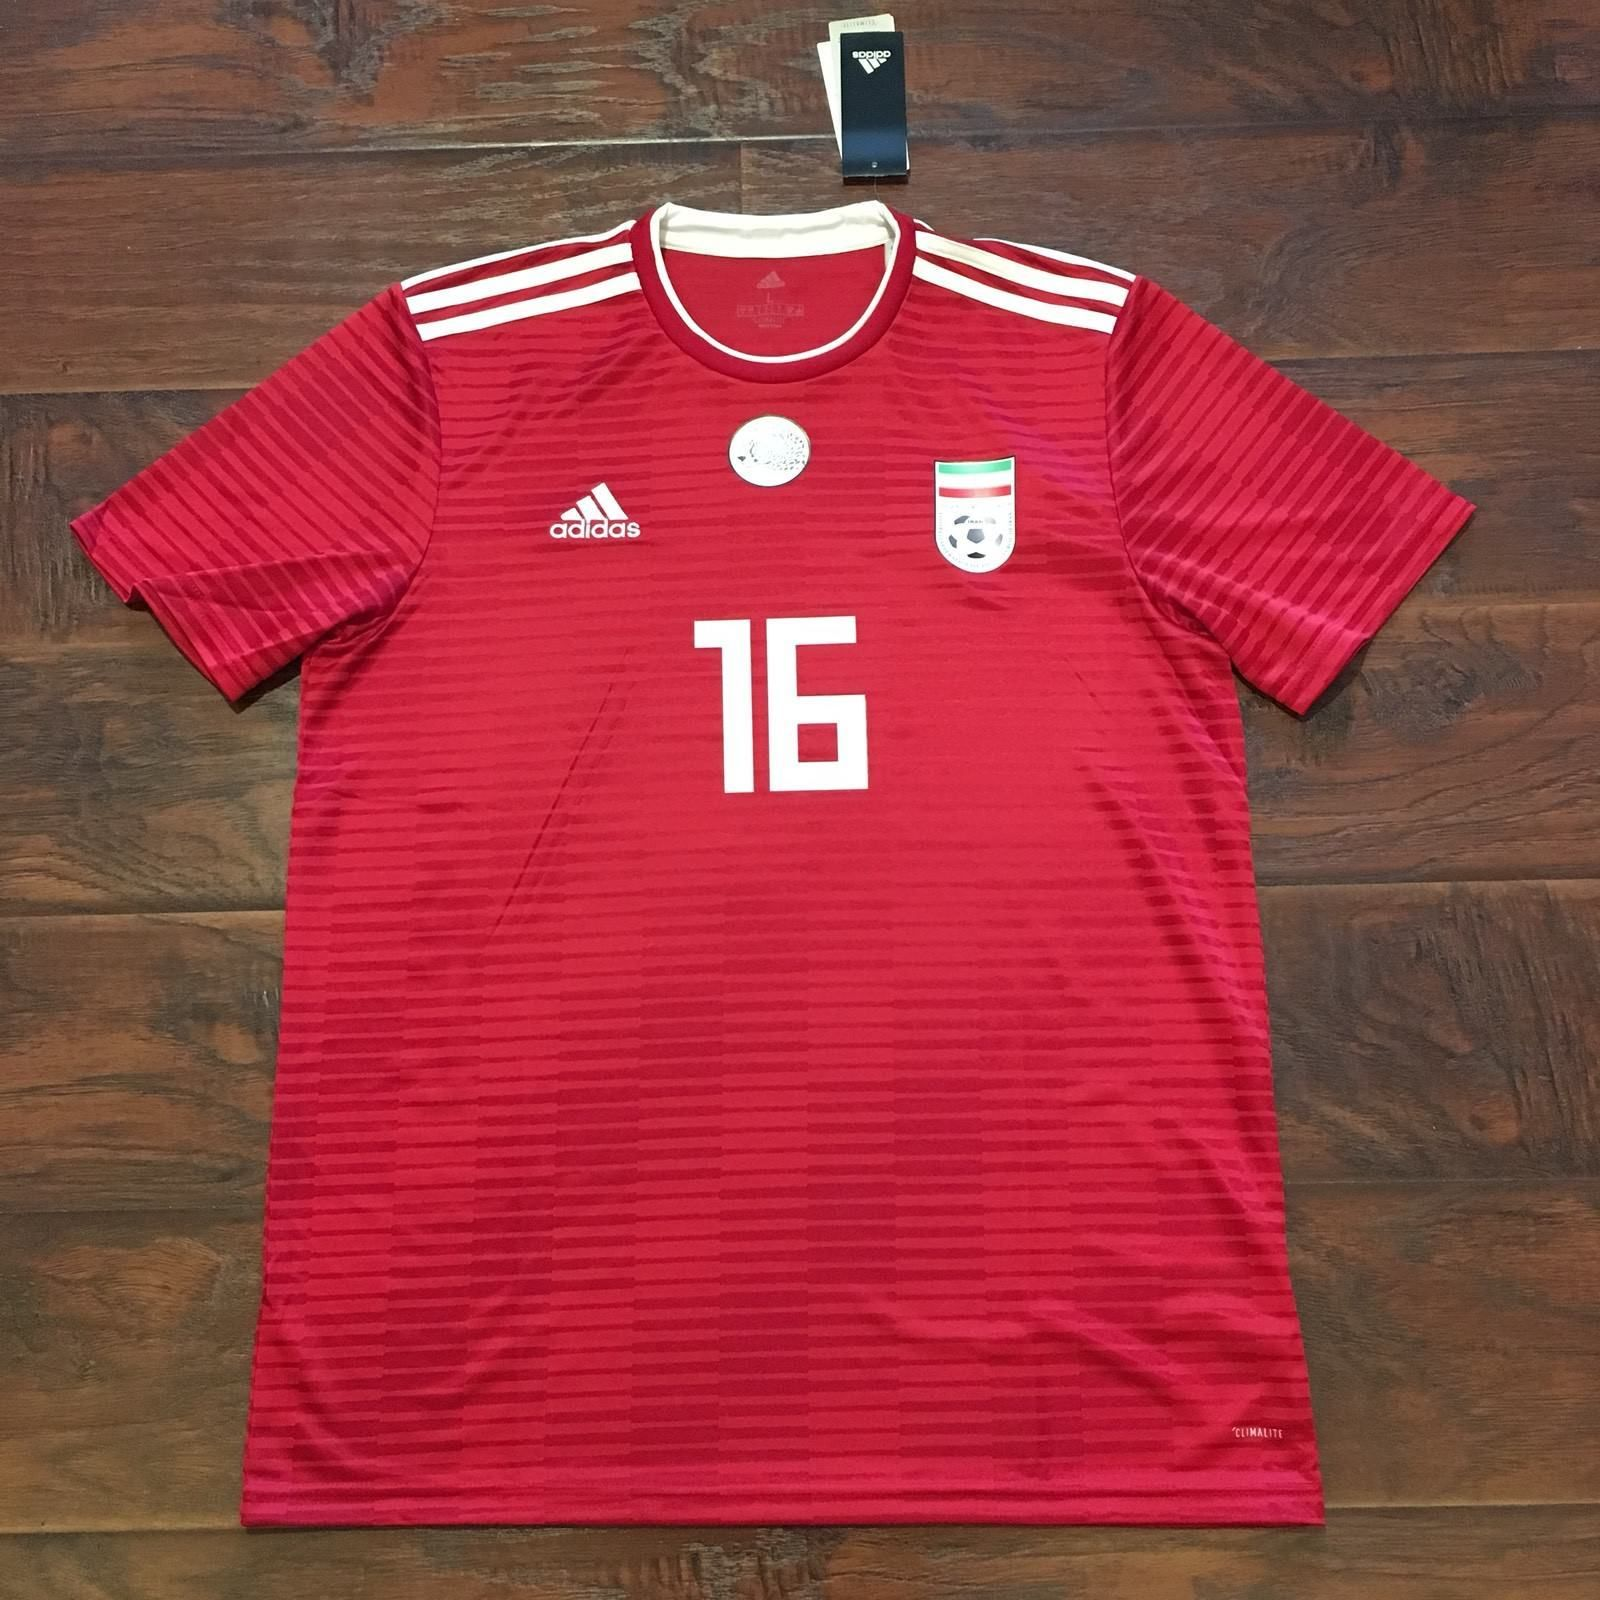 2018 Iran Away Jersey  16 Reza Ghoochannejhad Large Adidas World Cup Shirt  NEW Discount Price 115.00 Free Shipping Buy it Now 5d6727832